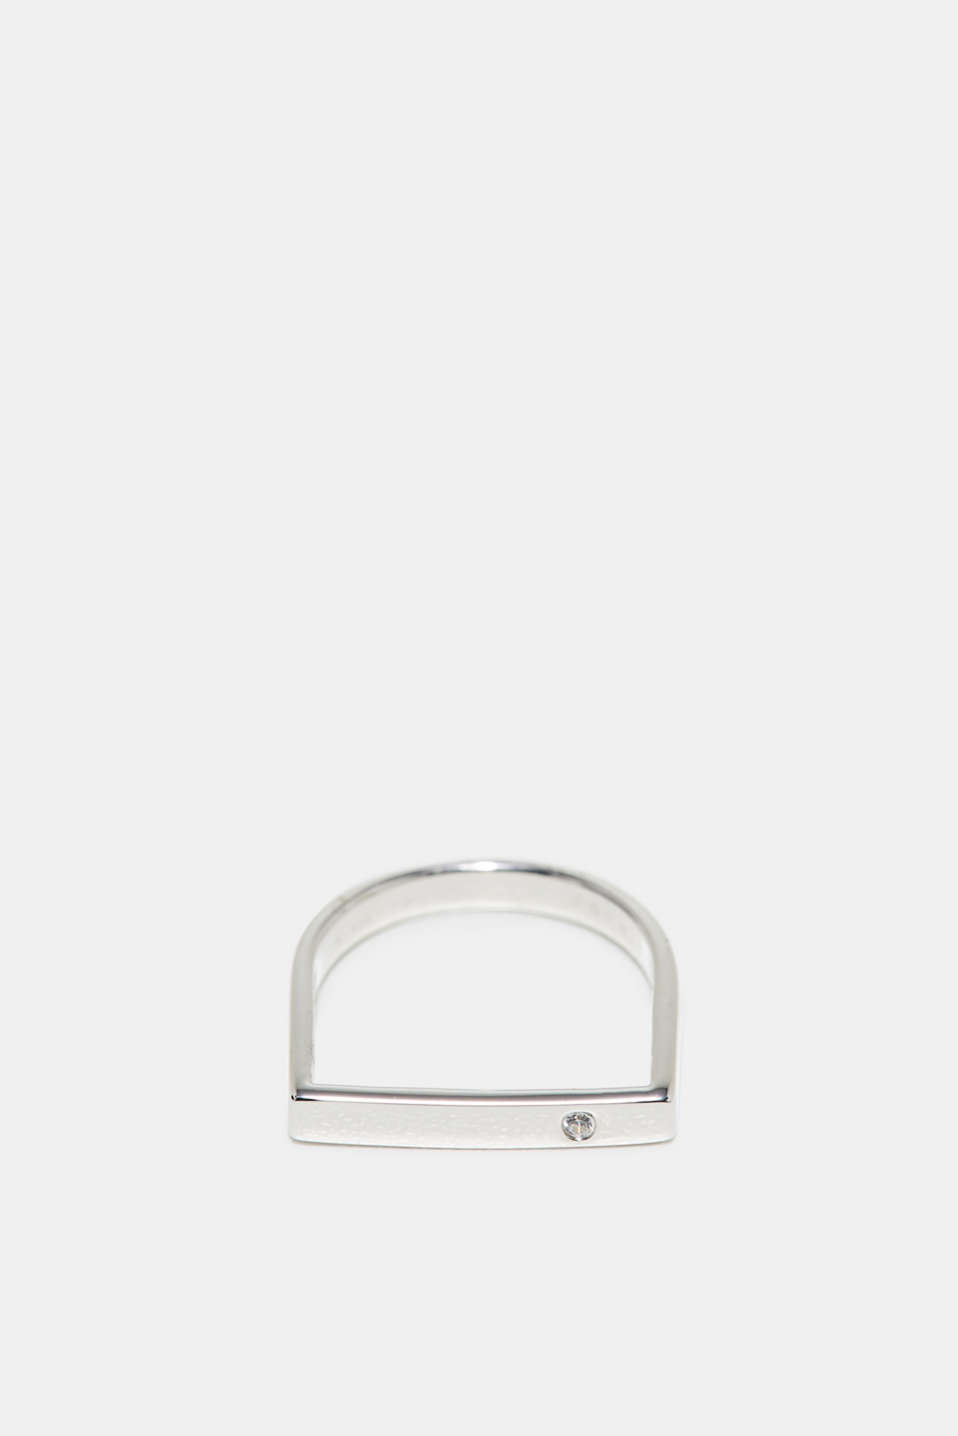 Esprit - Ring with zirconia, in sterling silver